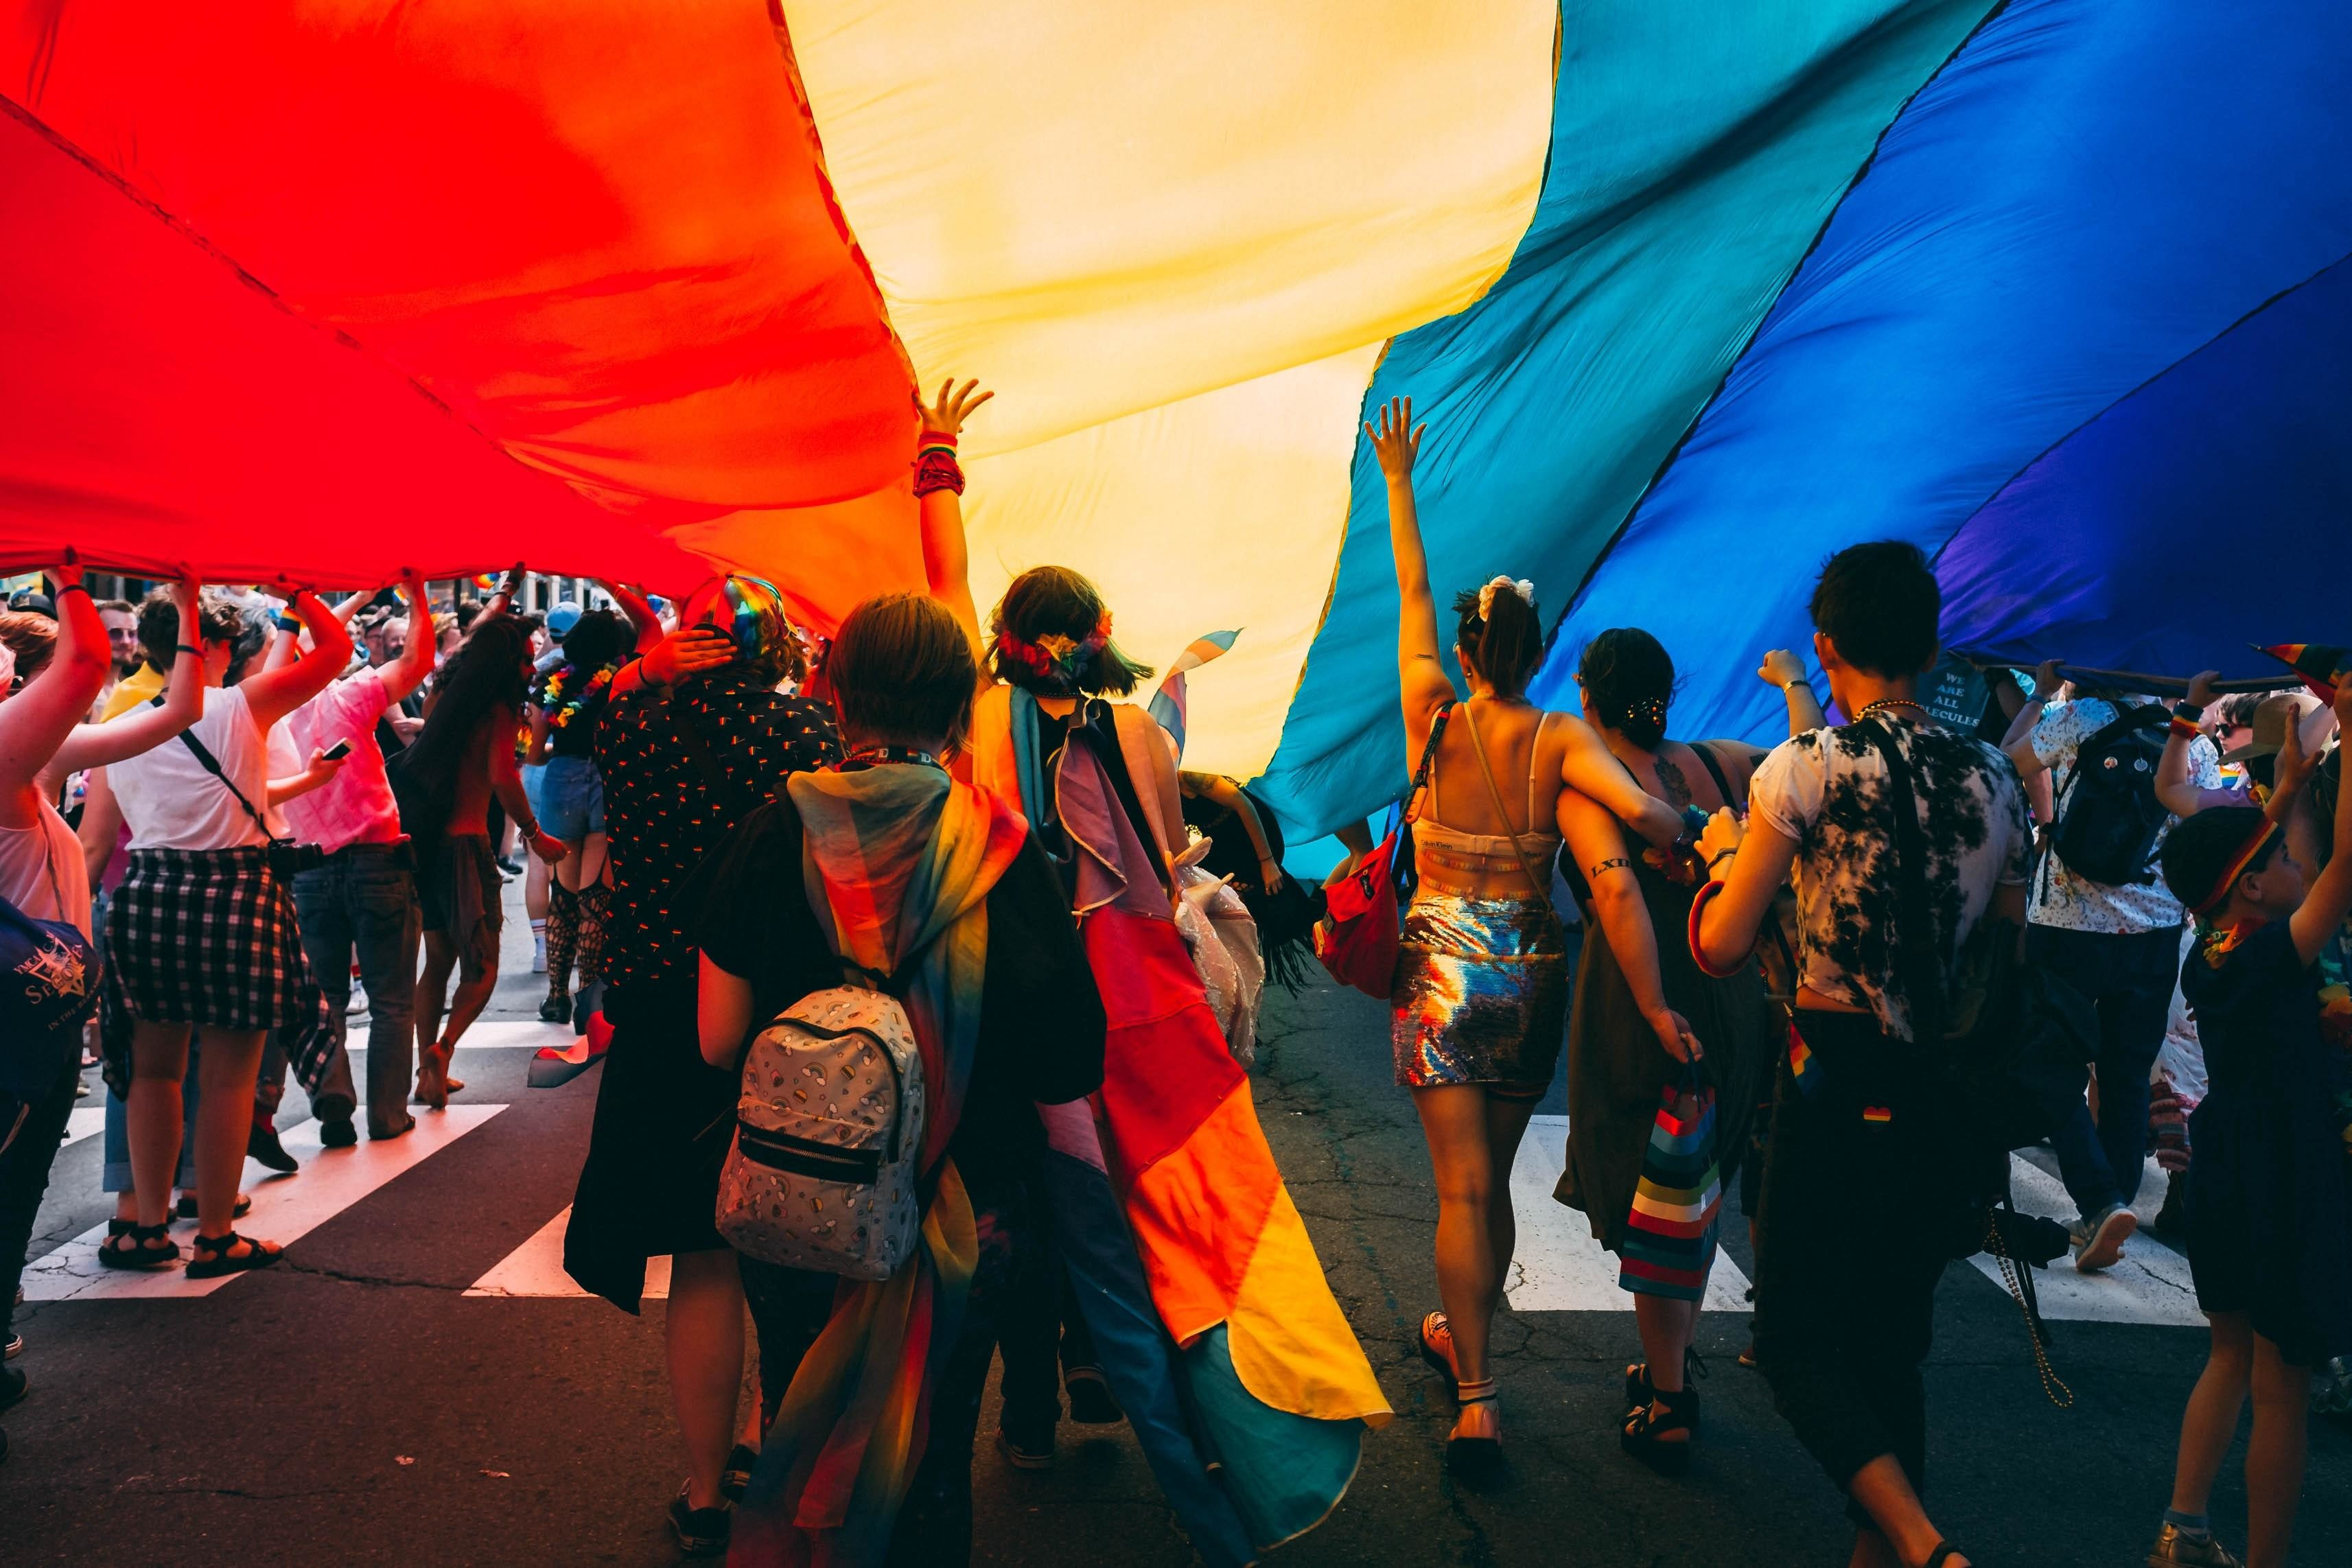 More young people than ever identity as LGTBQ – including 16% of Generation Z